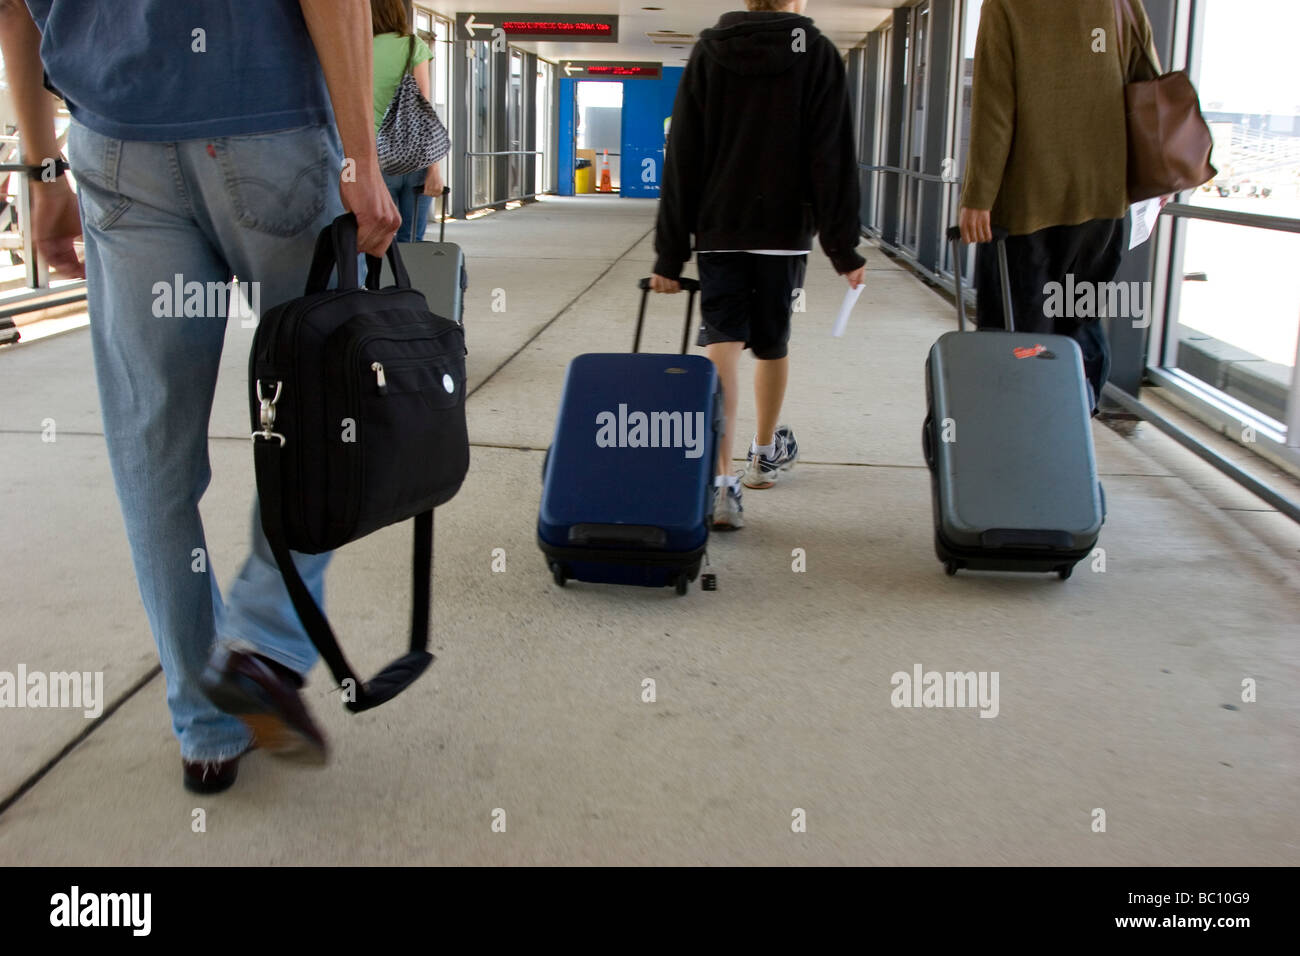 Airline passengers walking with carry on luggage to airplane - Stock Image